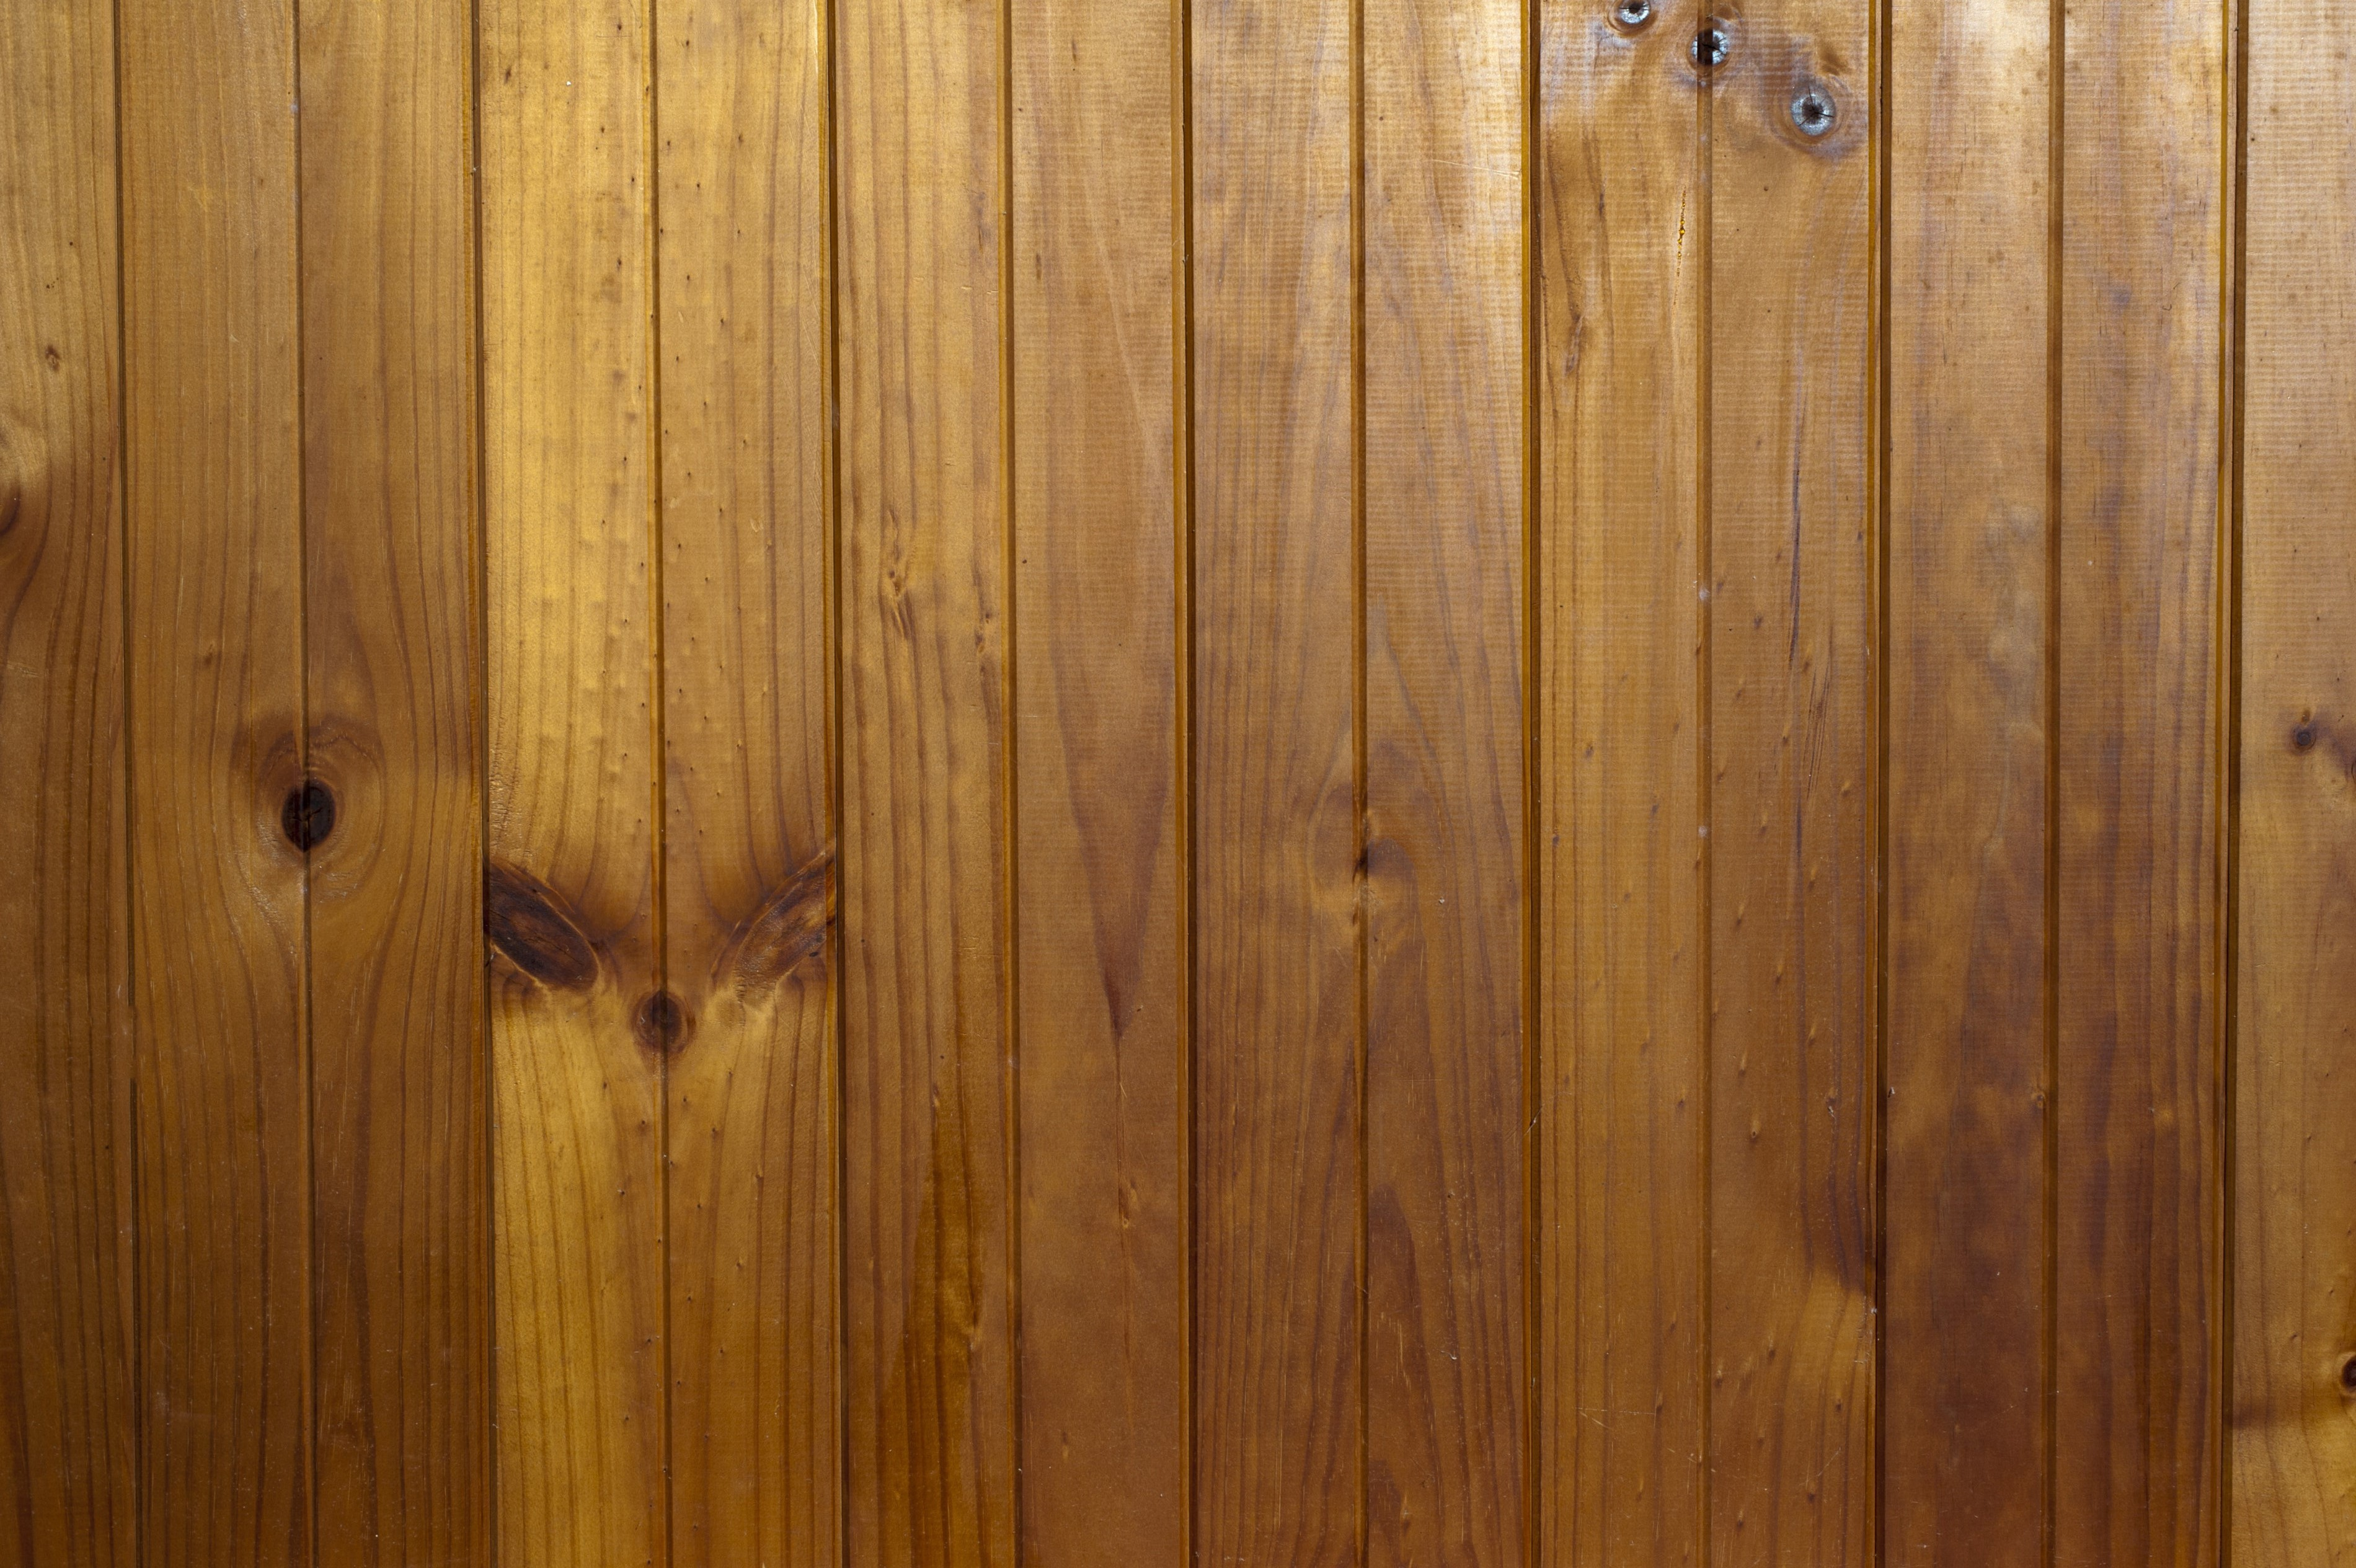 vertical wood cladding | Free backgrounds and textures | Cr103.com